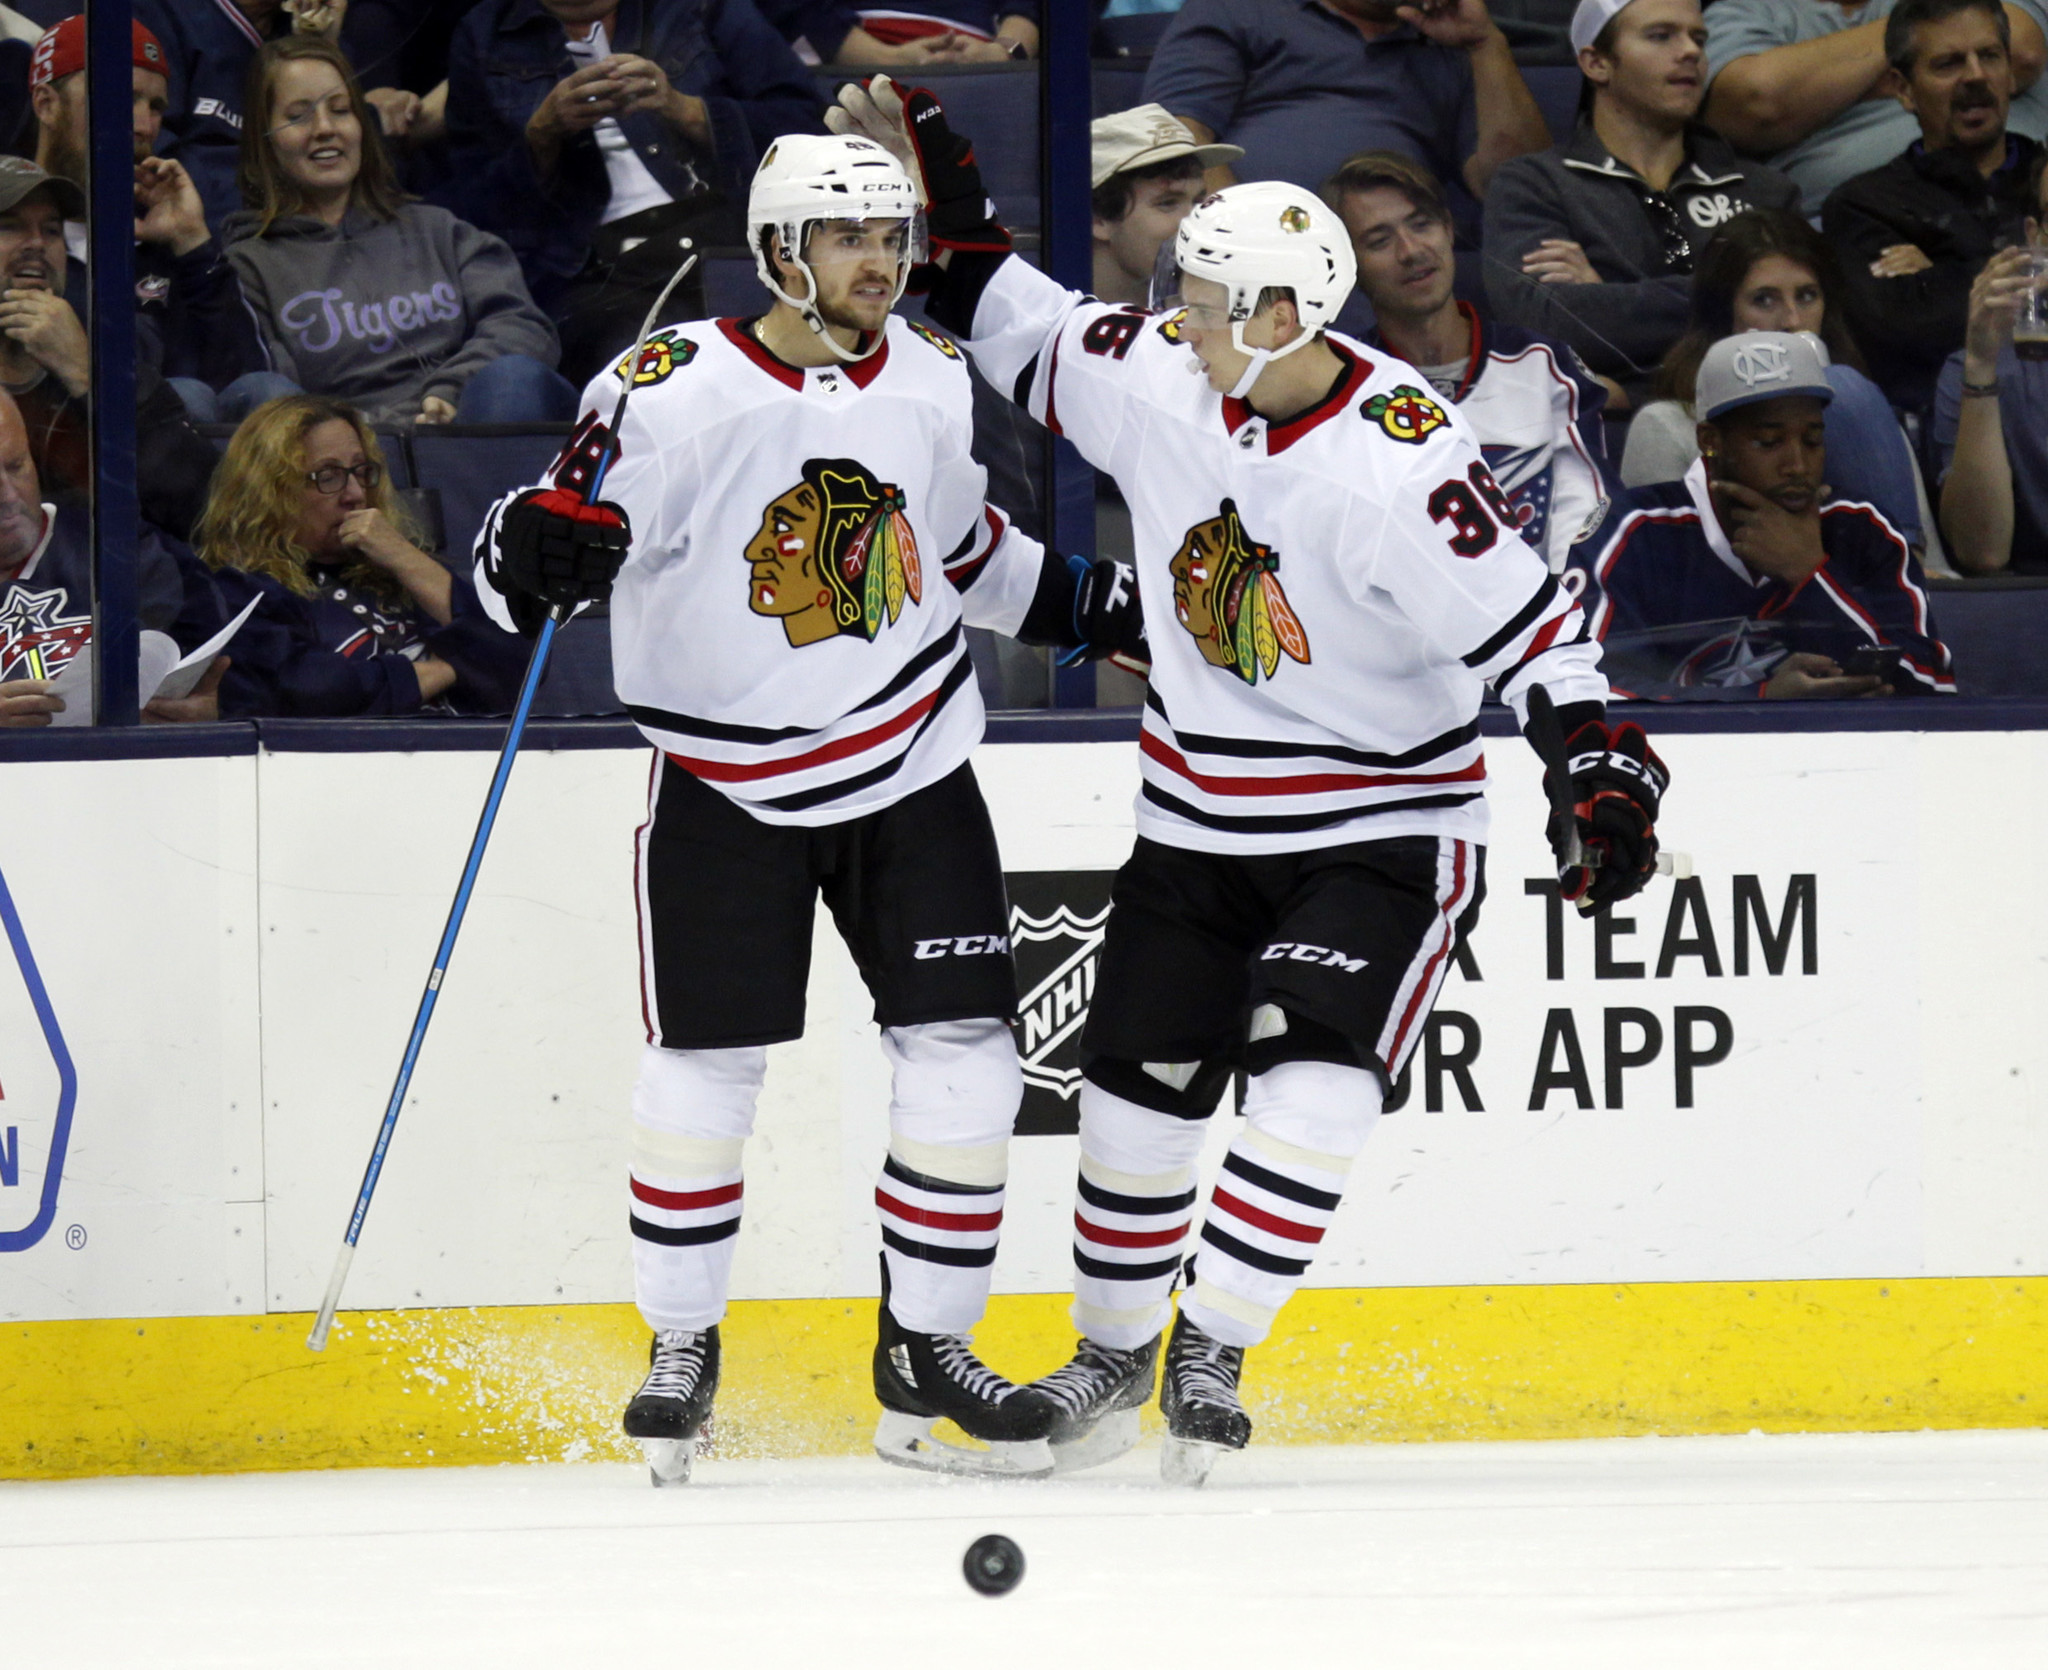 Blackhawks down Blue Jackets 5-2 in preseason debut - Chicago Tribune